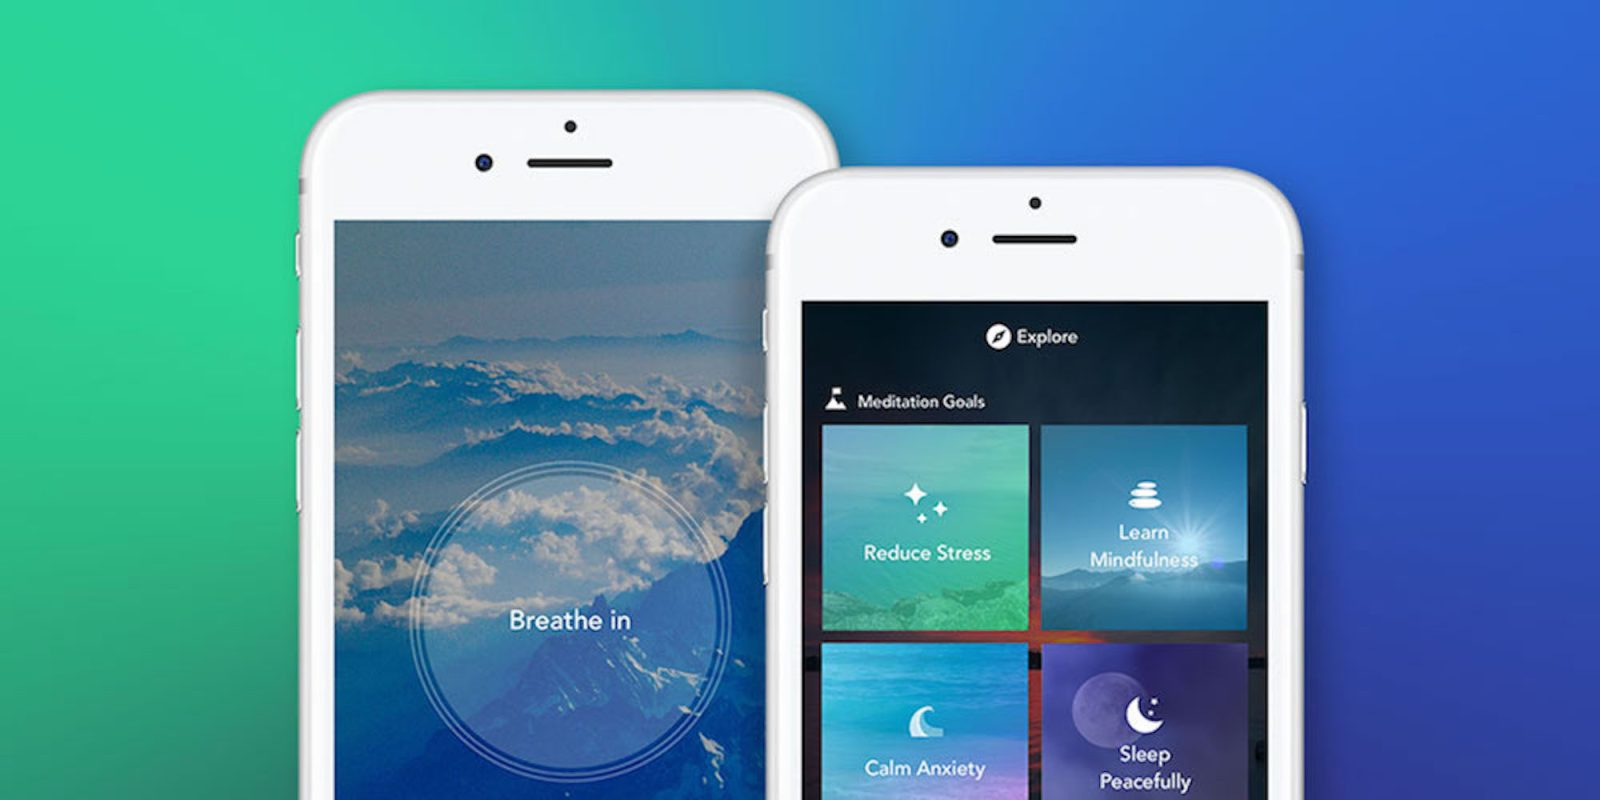 Aura Premium helps you relieve stress through meditation: subscriptions from $60